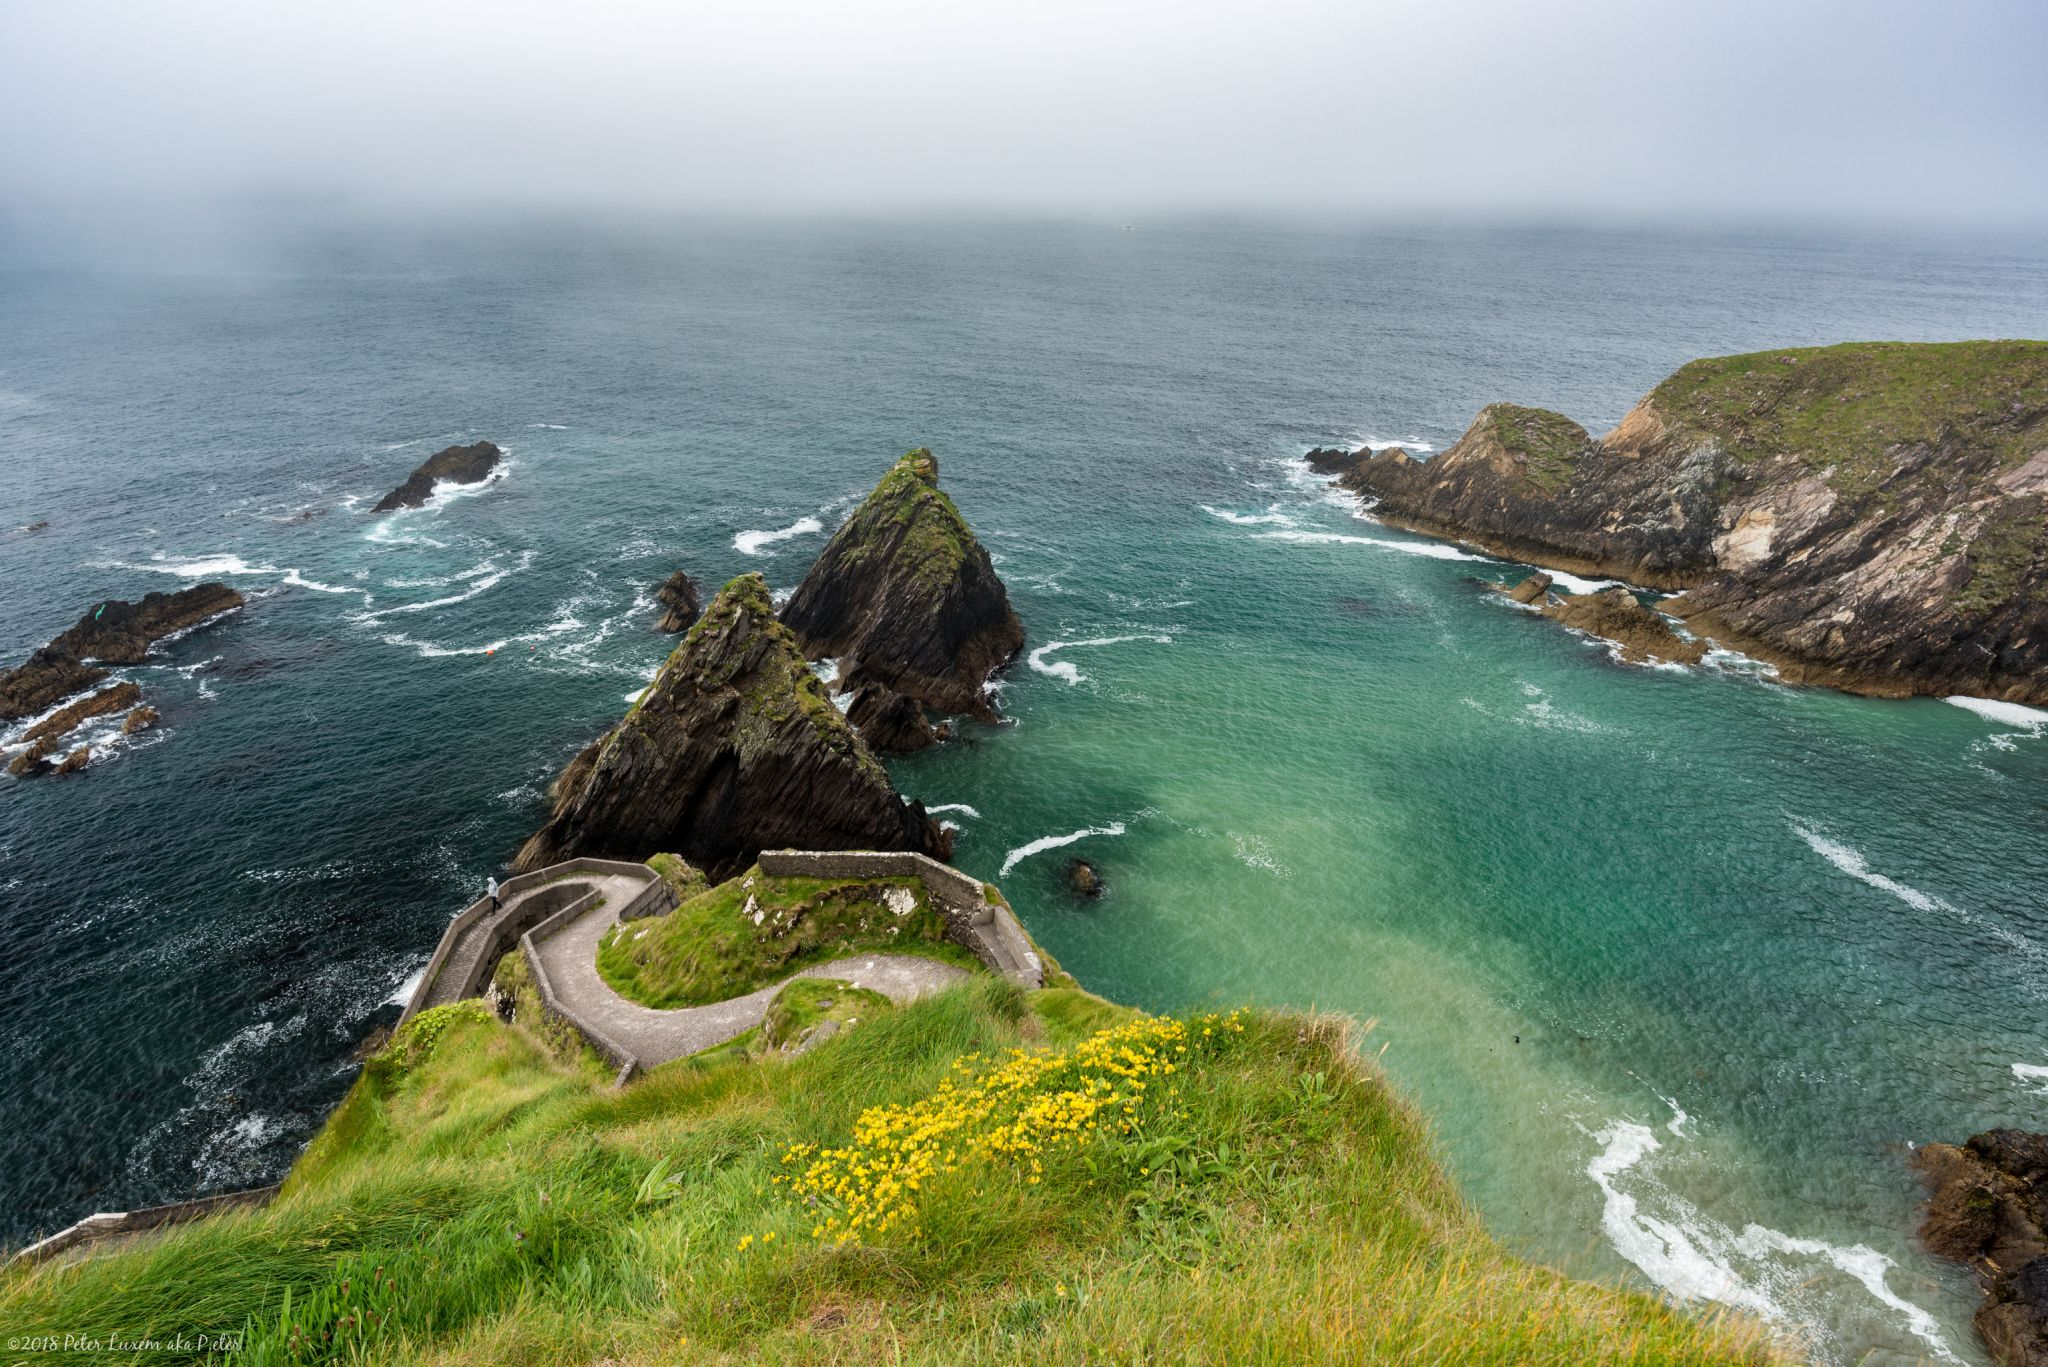 Dunquin Harbour, Ireland